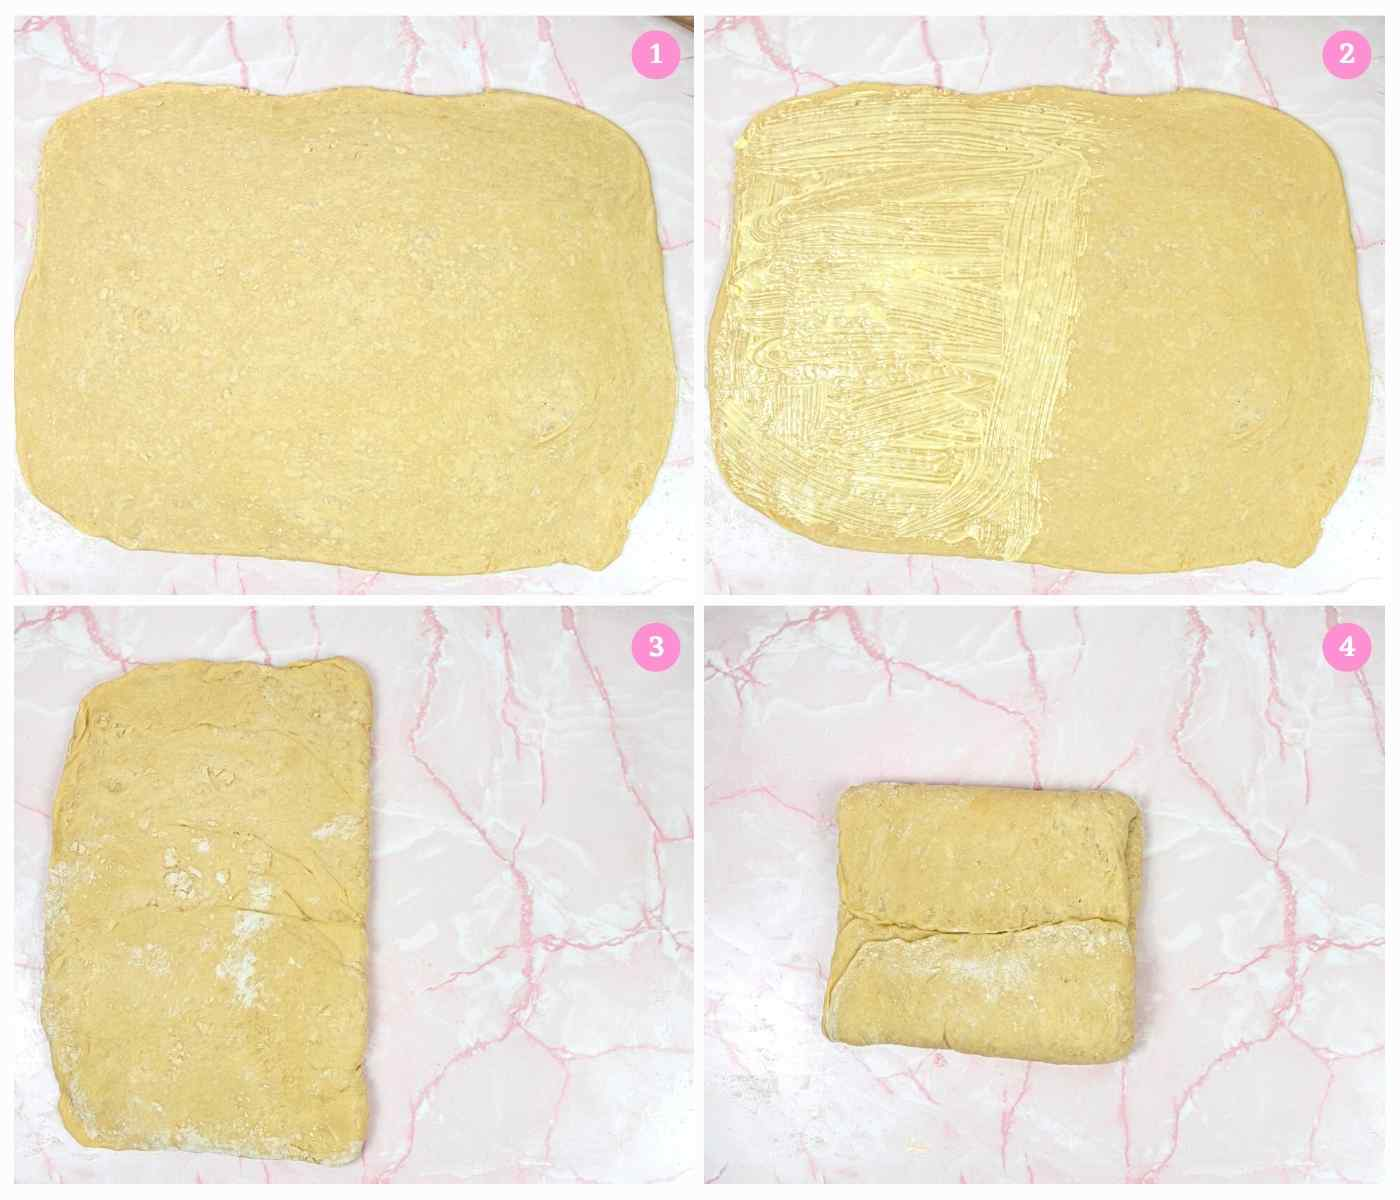 Collage of 4 images showing how to laminate dough